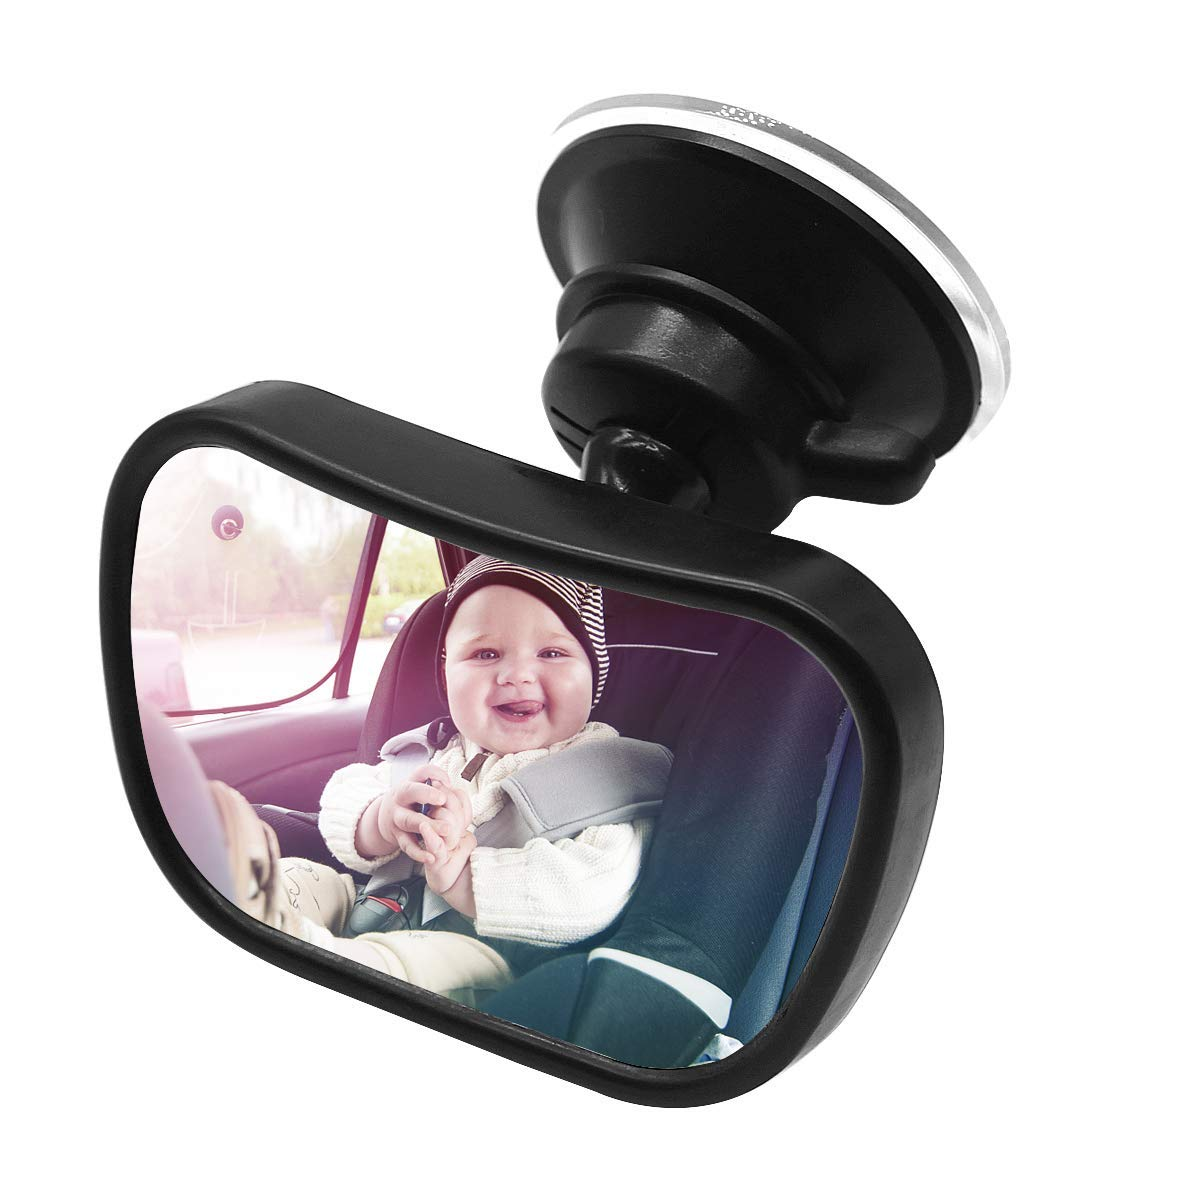 Upgrade Mini Baby Car Mirror Rear View Mirror in Rear Facing Car Backseat Safety Monitor for Infant Child Toddler with Shatterproof Acrylic and 360/°Adjustable Suction Cup